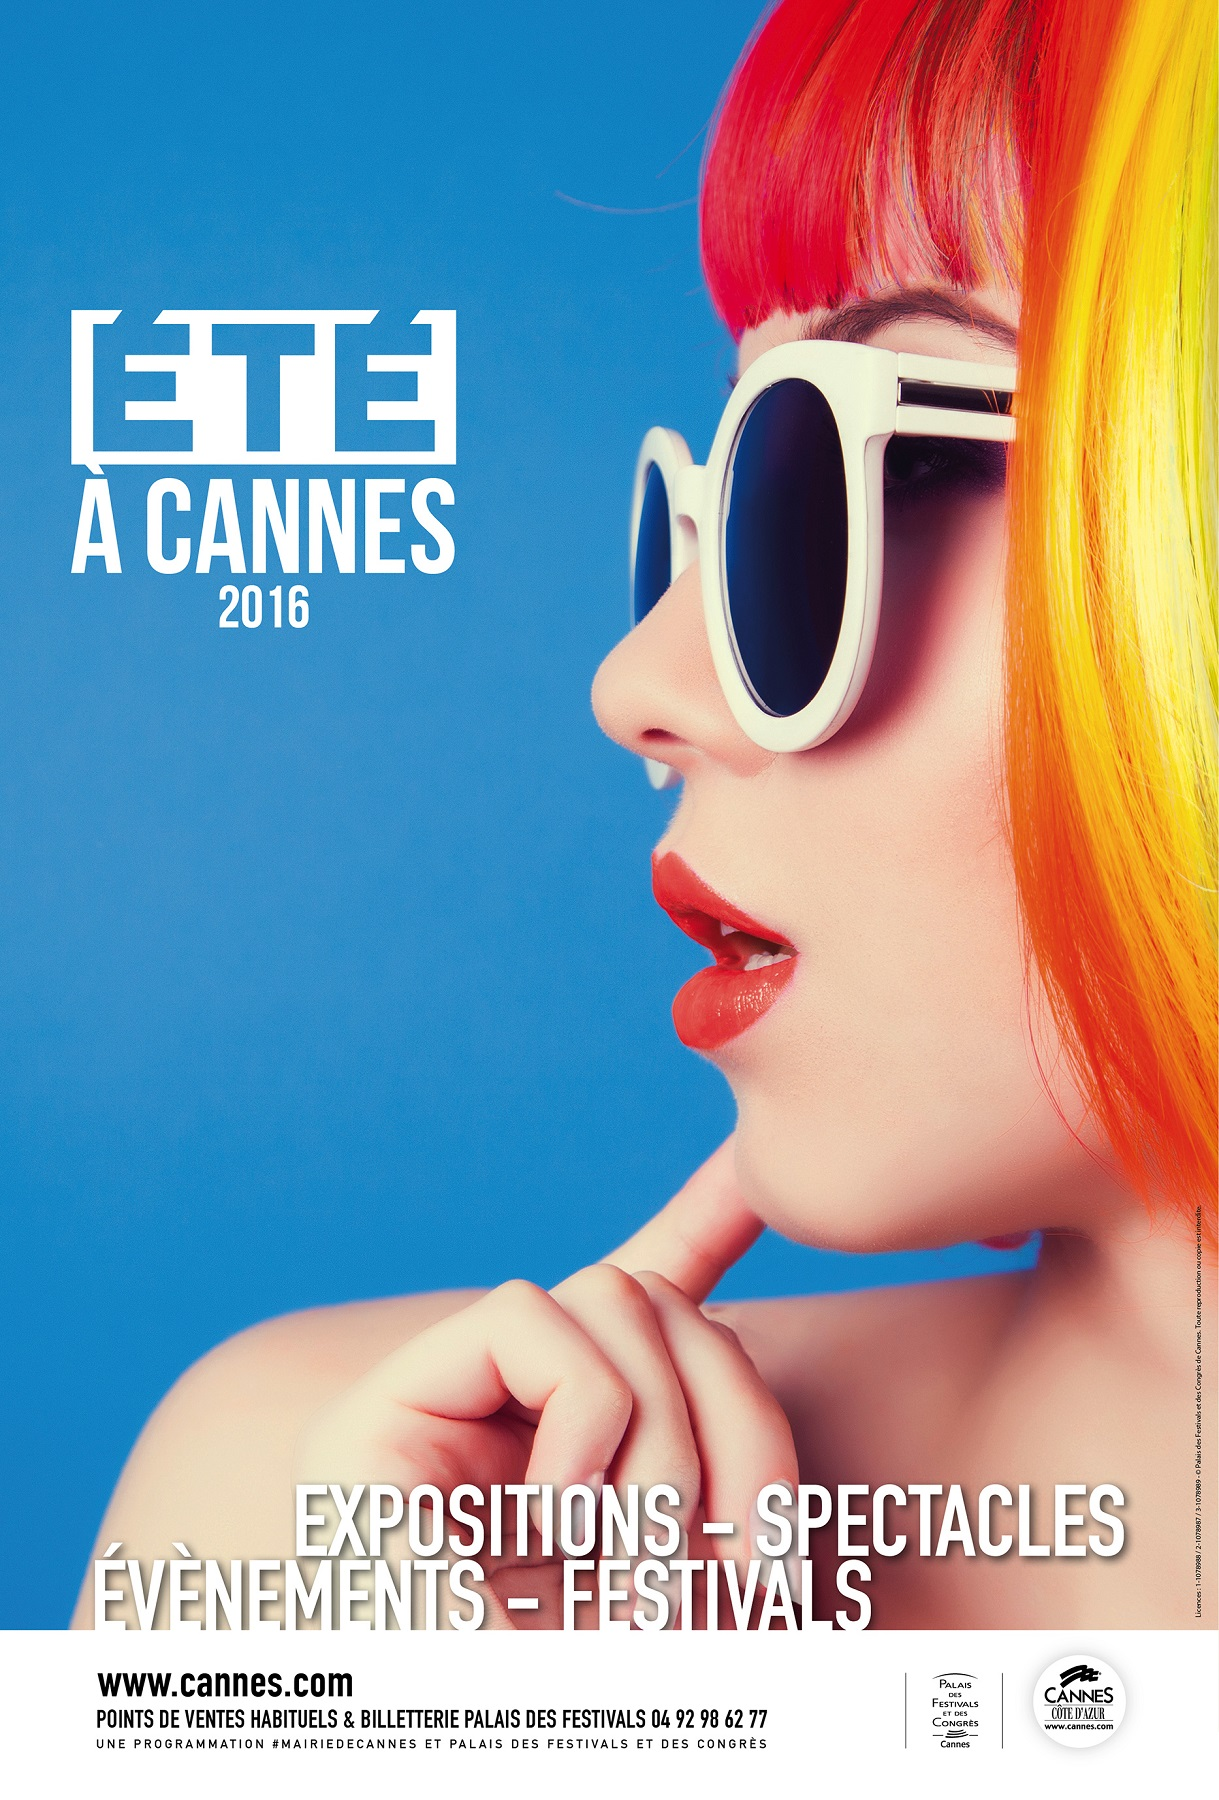 http://ETE%20A%20CANNES